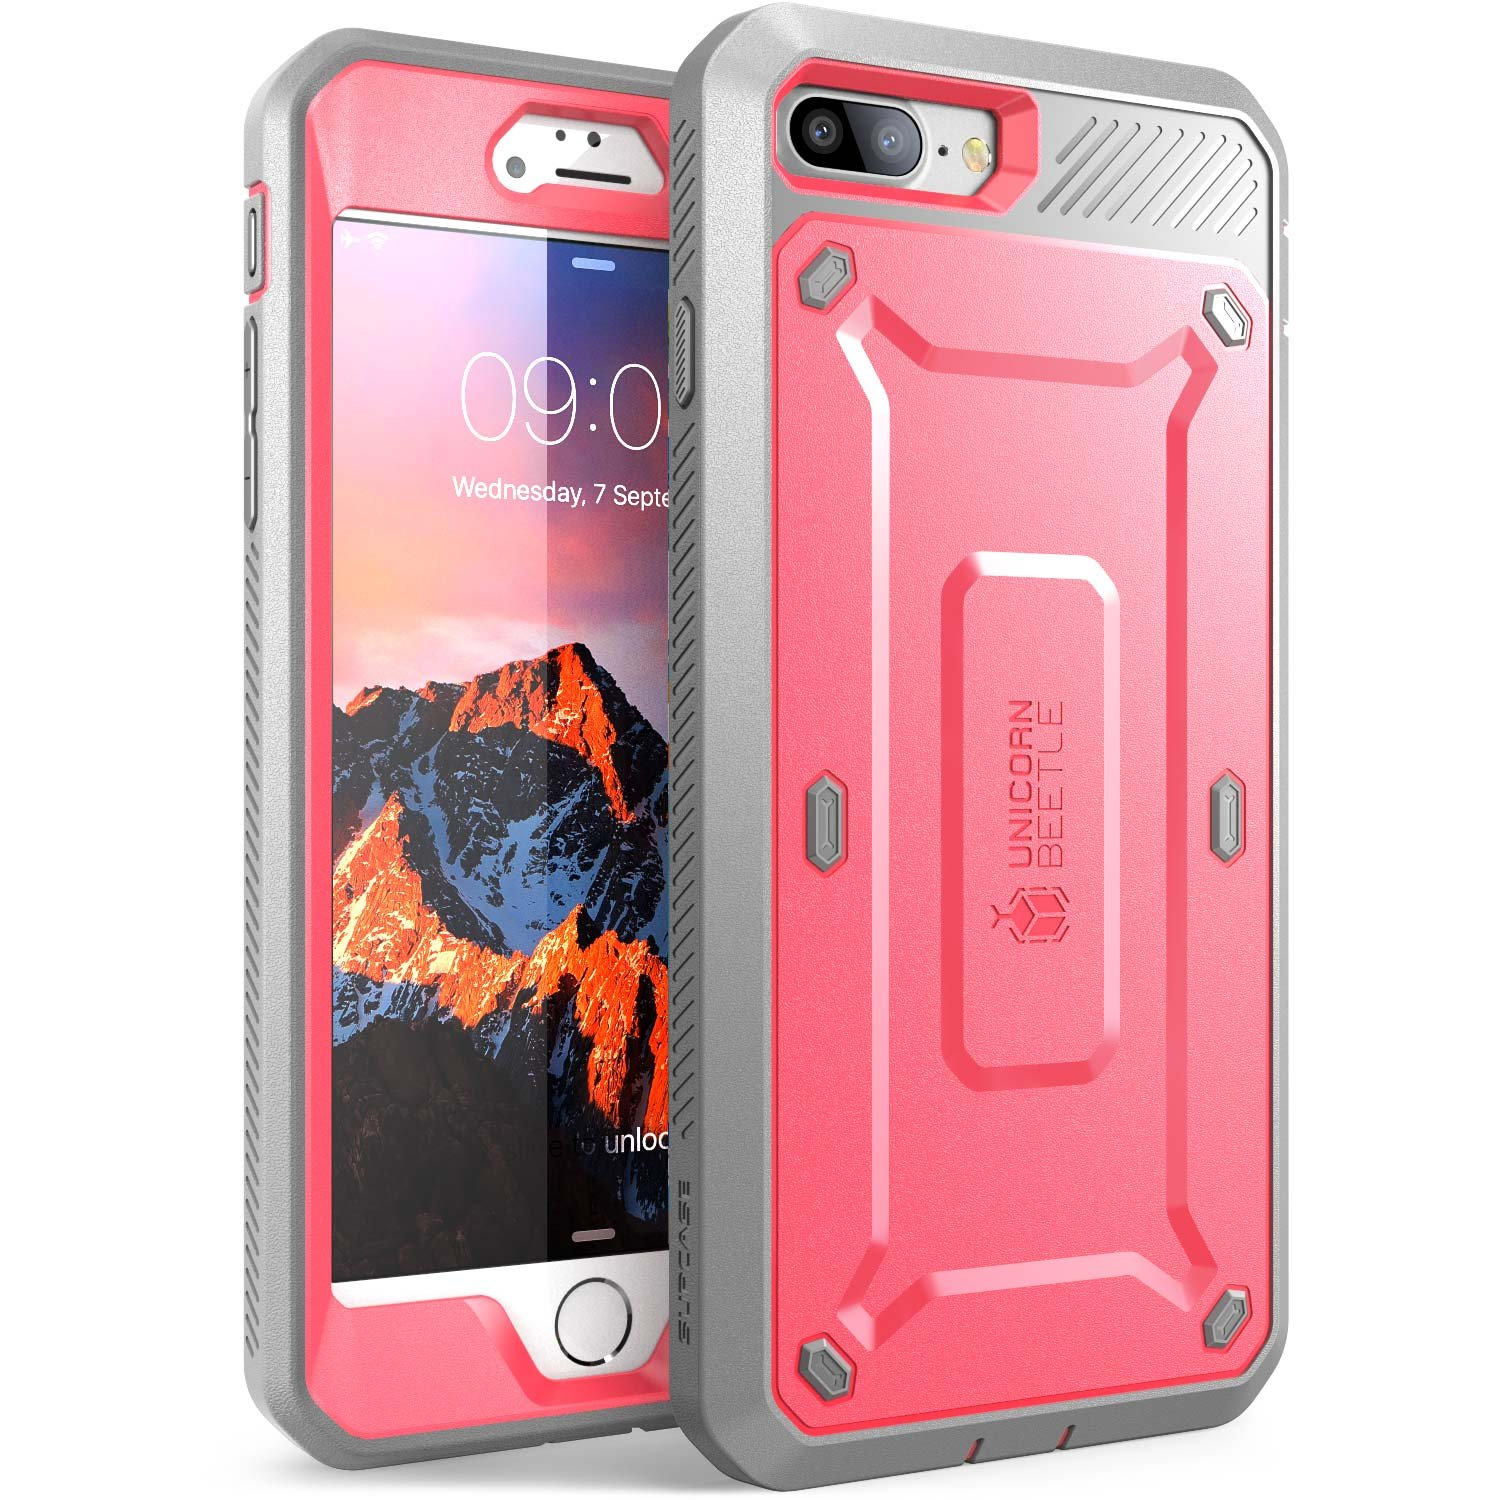 SUPCASE Unicorn Beetle Pro Series Case Designed for iPhone 7 Plus, iPhone 8 Plus Case, with Built-in Screen Protector Full-Body Rugged Holster Case for iPhone 7 Plus/iPhone 8 Plus (Pink/Gray)